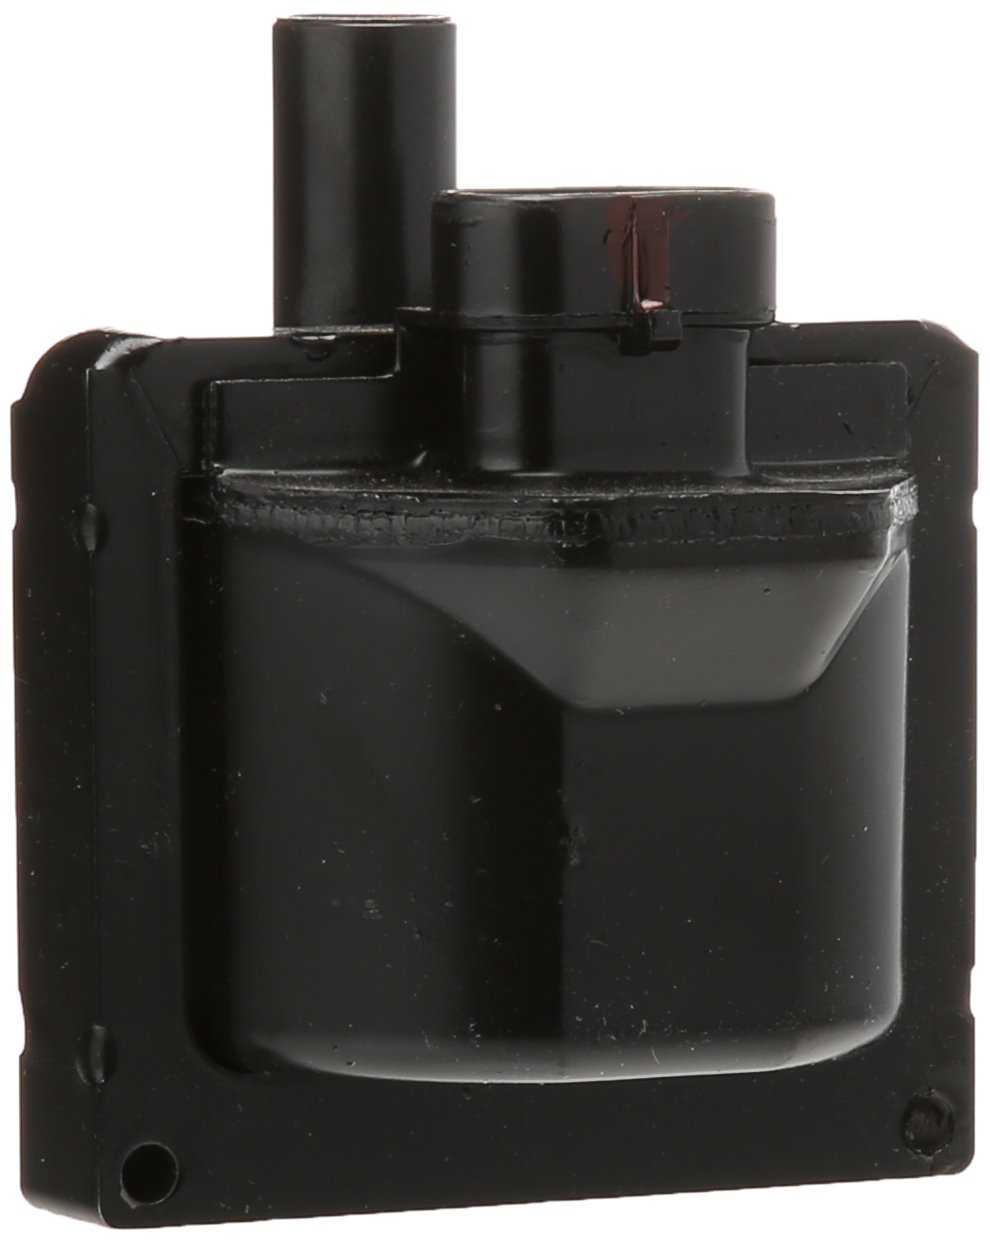 Acdelco D577 Gm Original Equipment Ignition Coil Automotive Dis Wiring